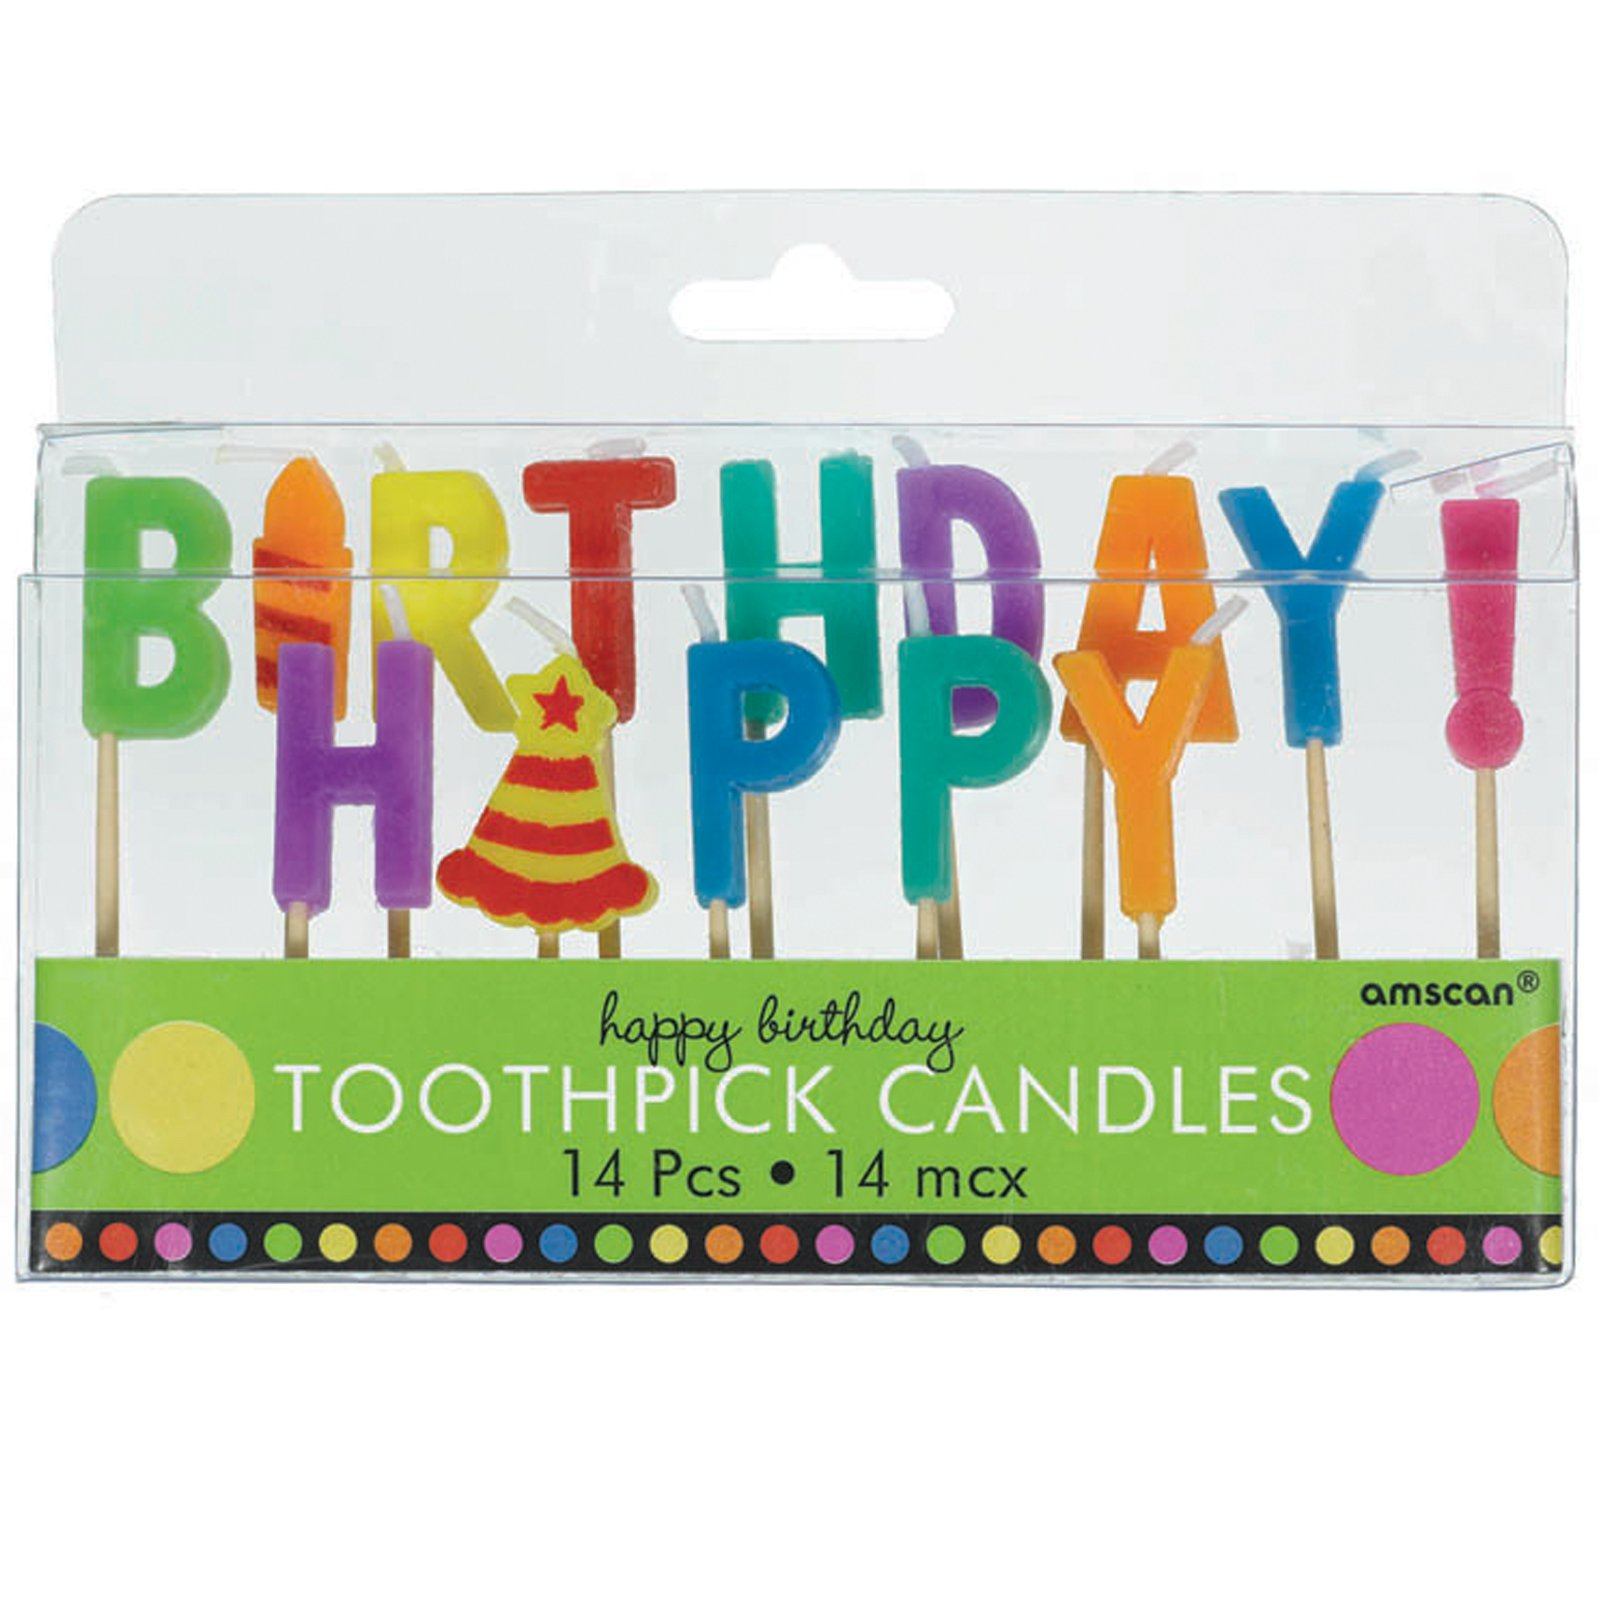 Dots and Stripes Happy Birthday Toothpick Candles (14 count)